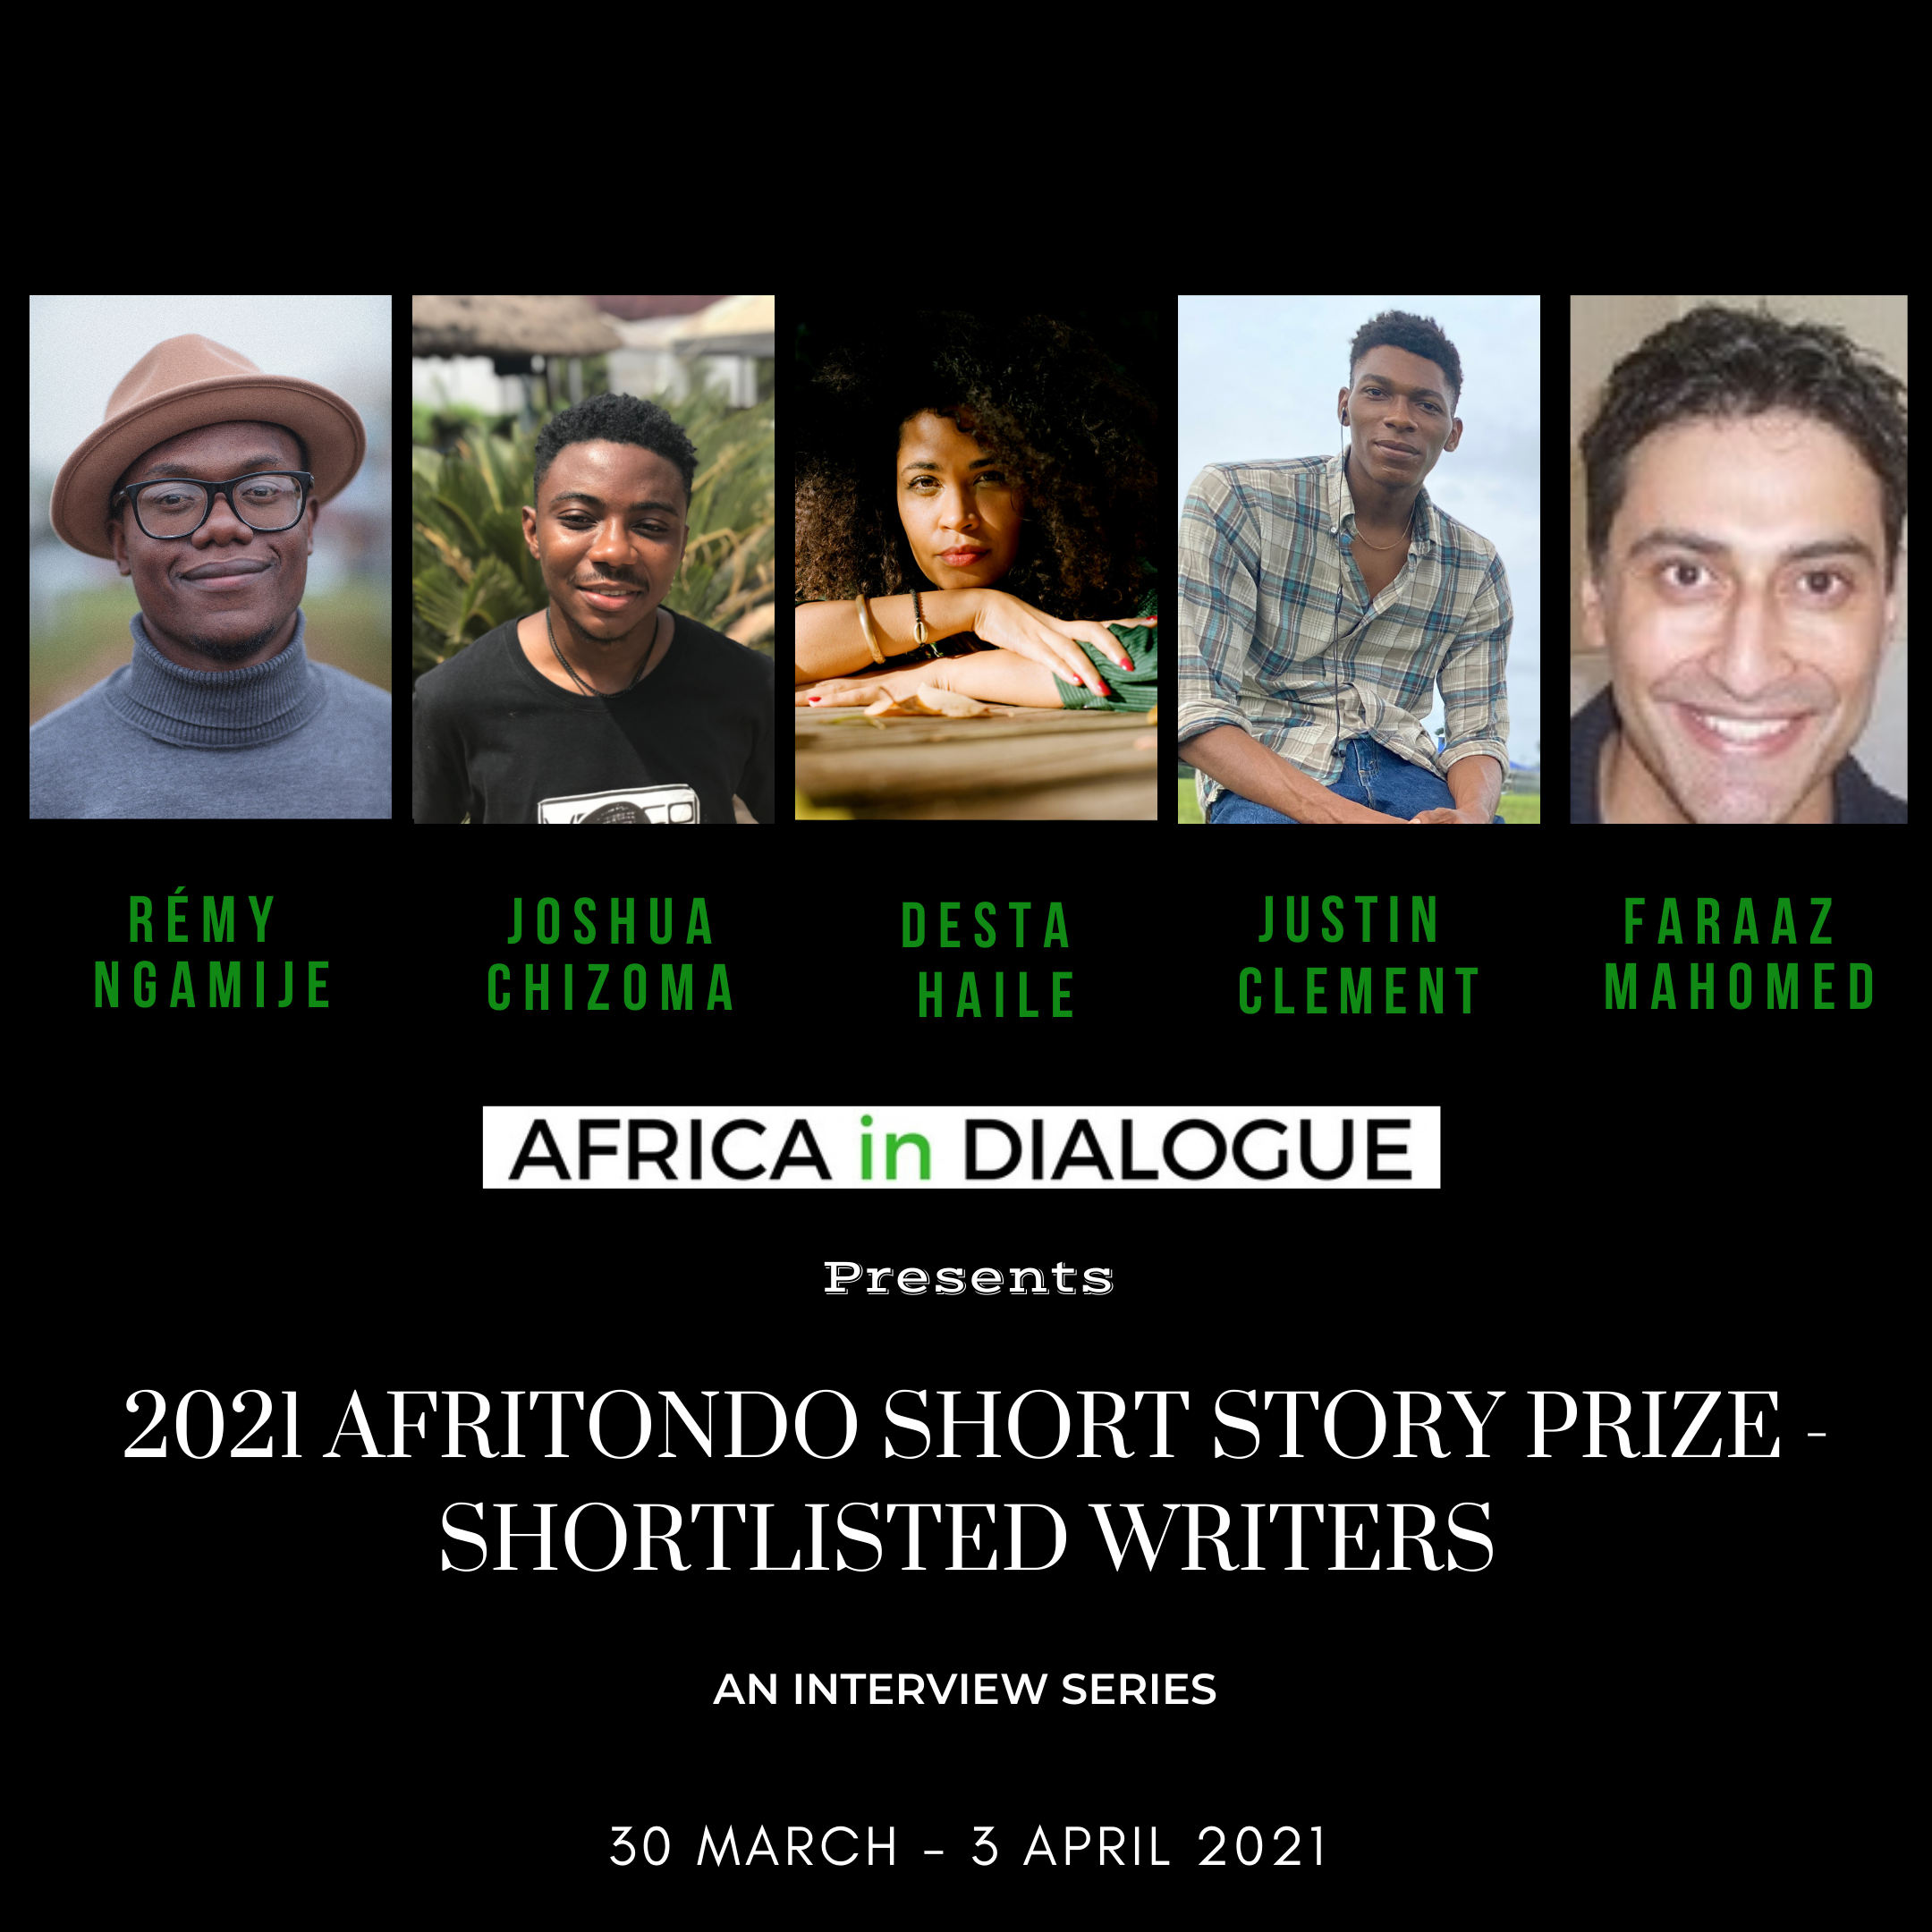 2021 Afritondo Short Story Prize: Conversations with the Shortlisted Writers and Winner